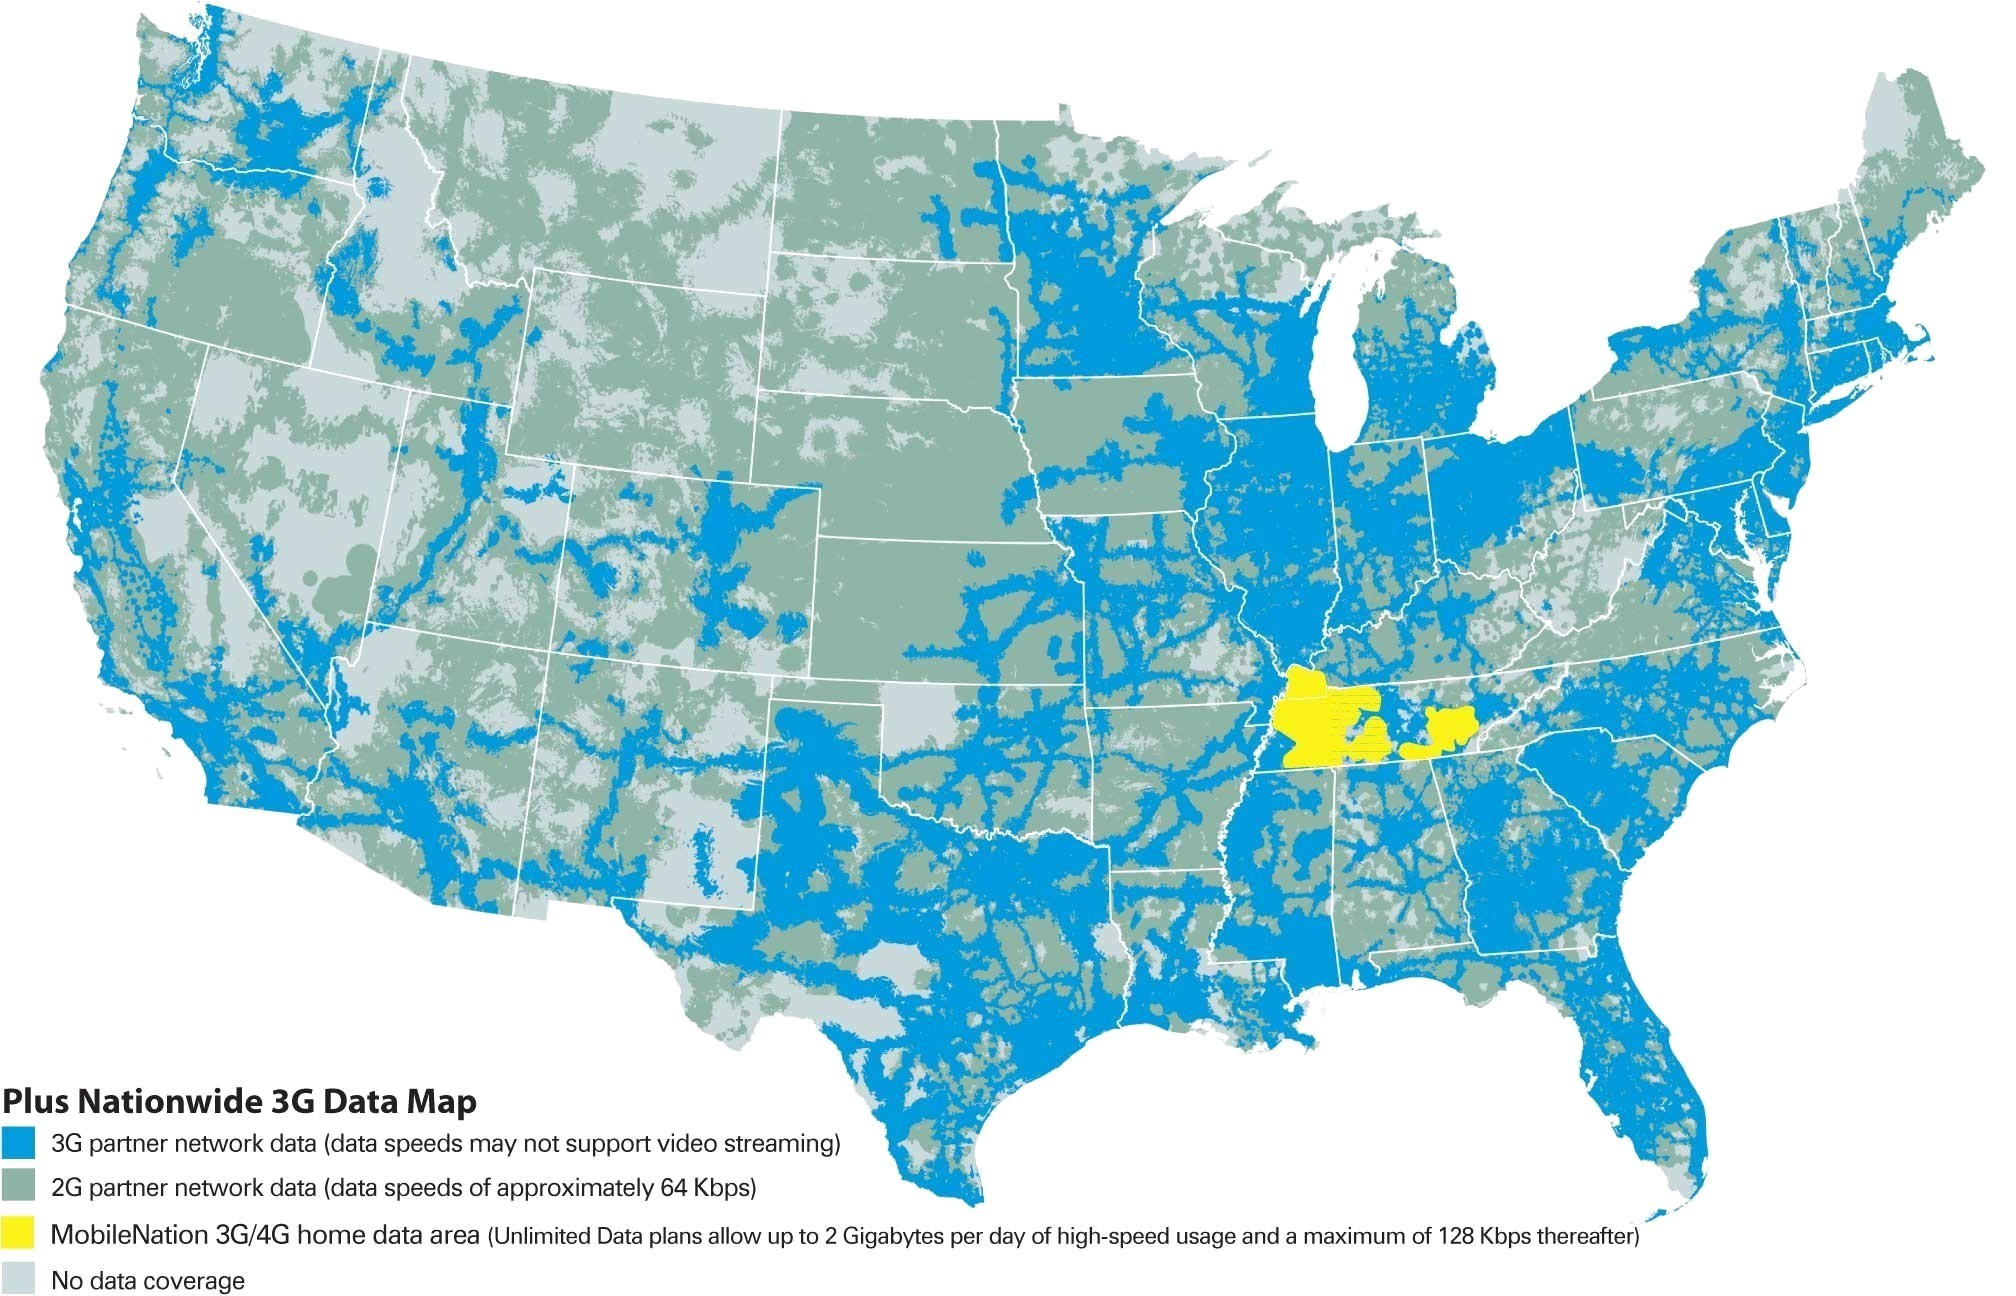 Sprint Us Coverage Map 2016 Network Lp Map Fresh Sprint Coverage Map - Sprint Coverage Map Texas